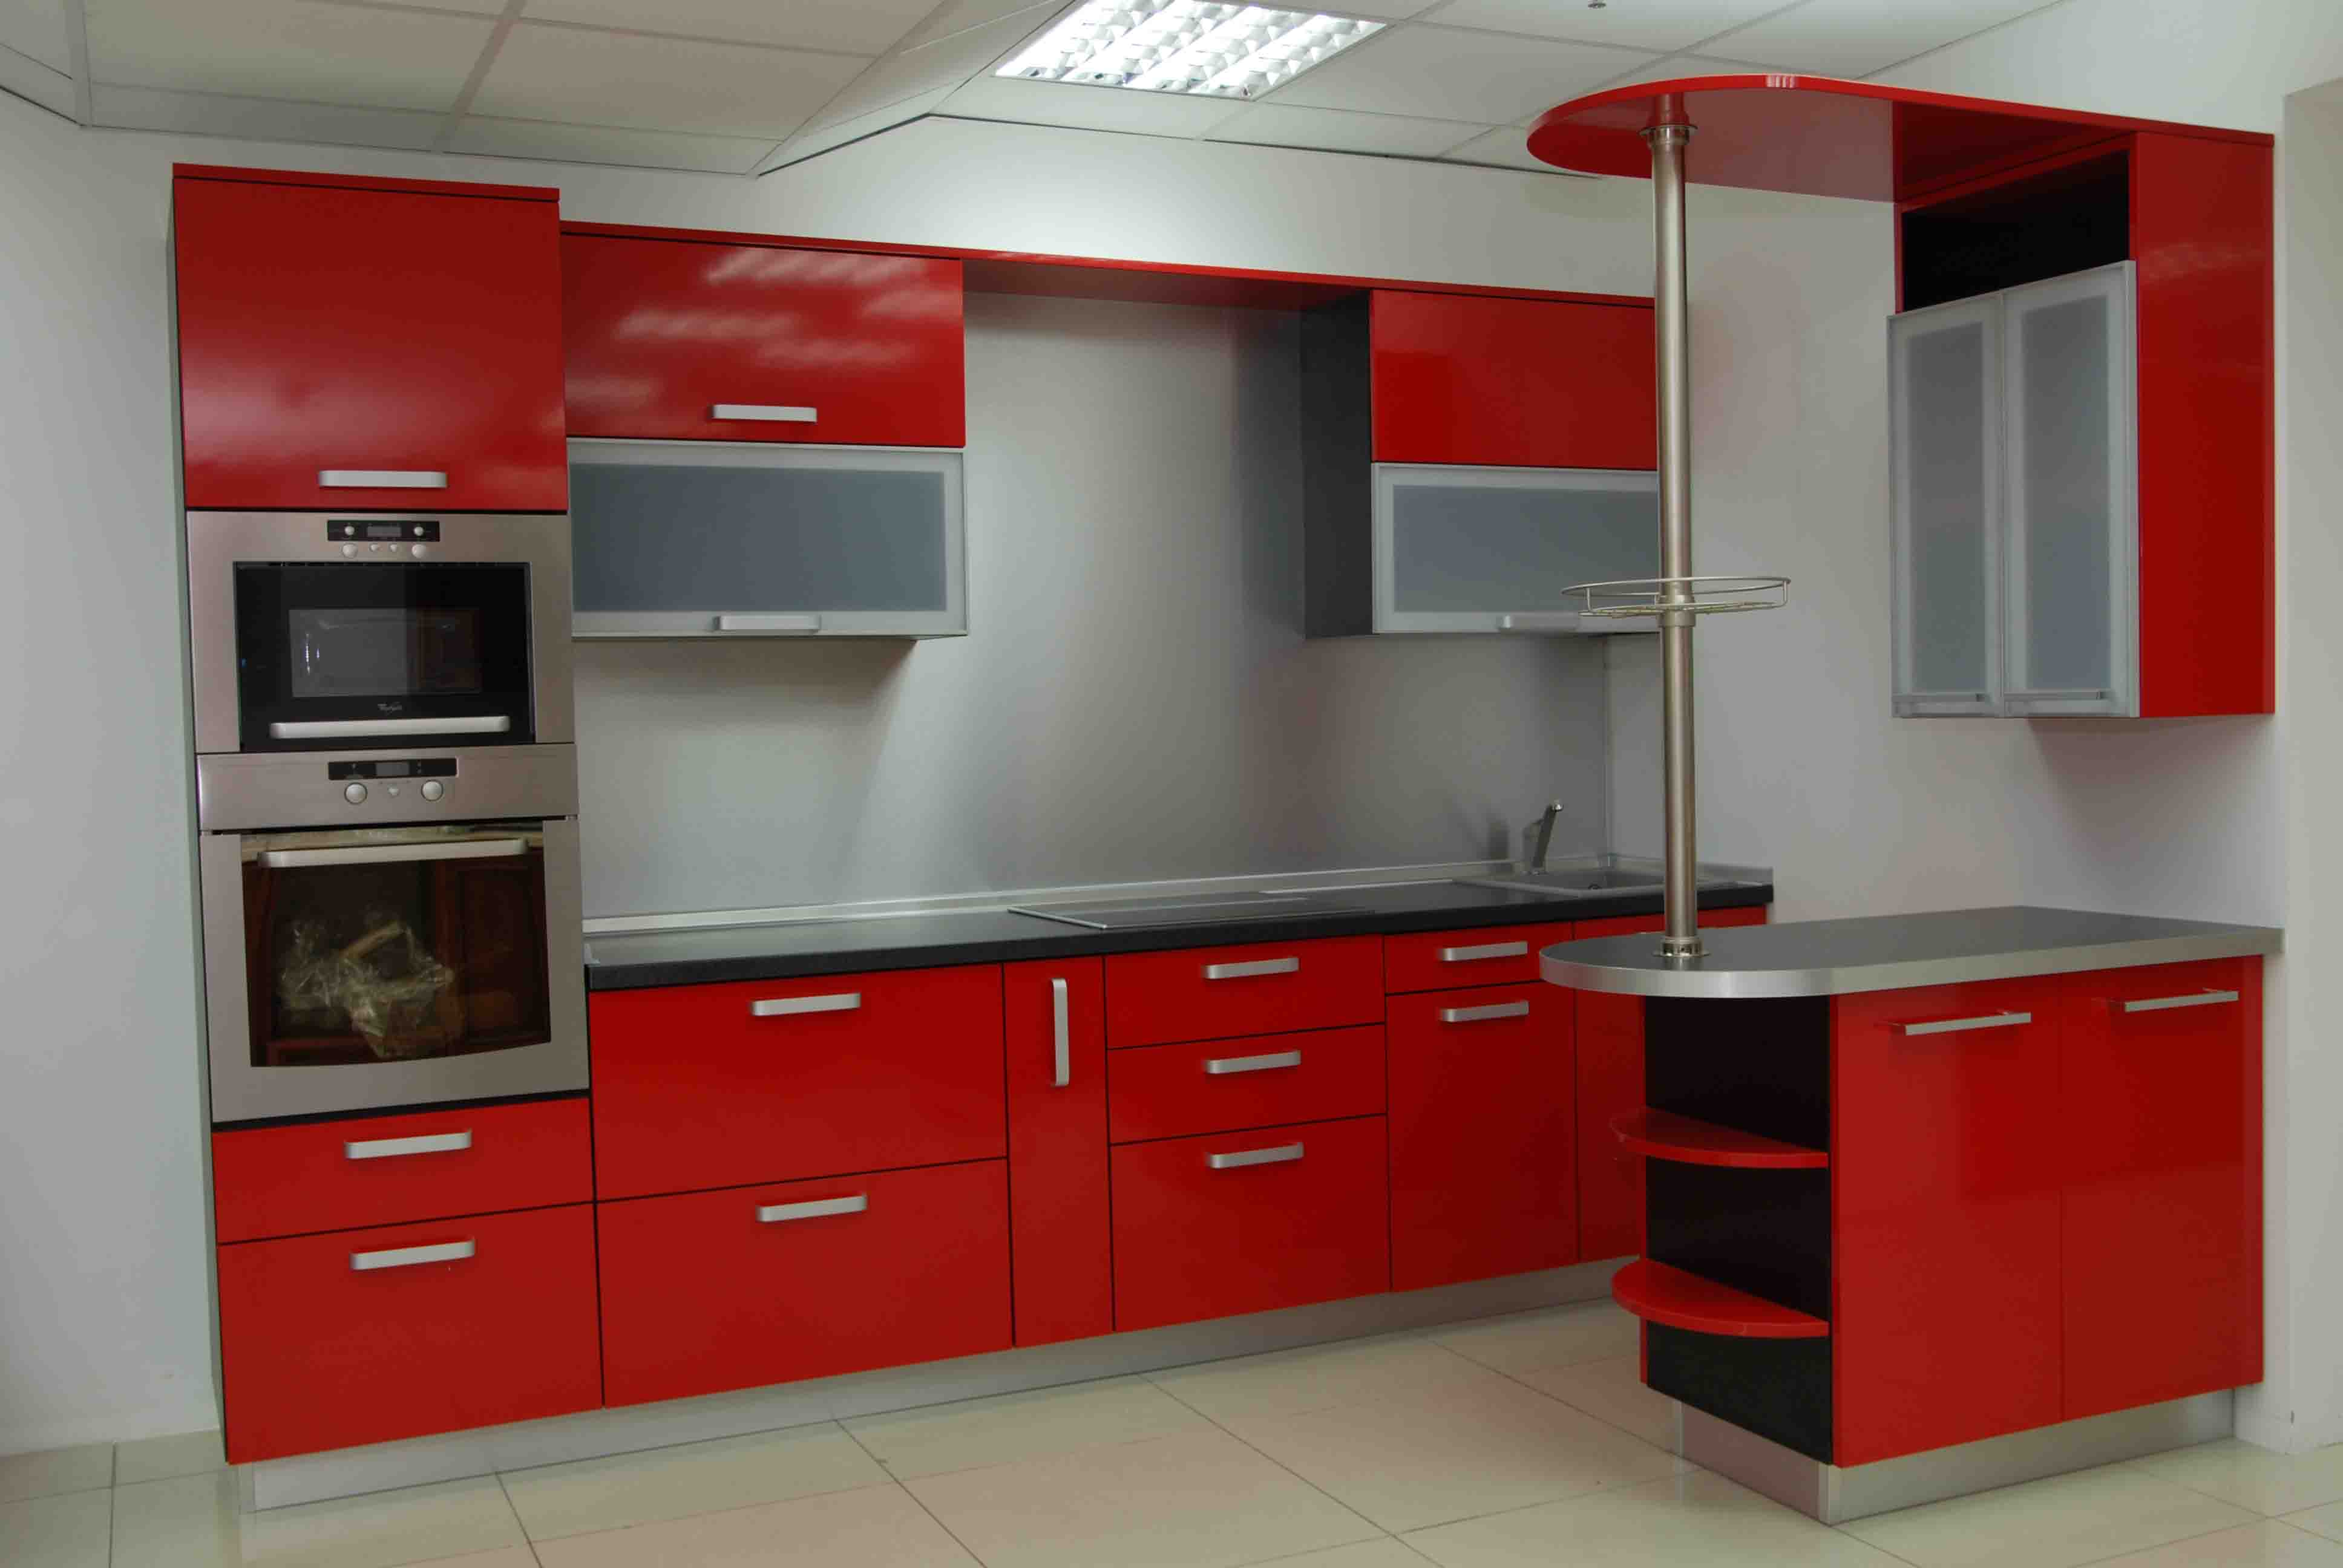 kitchen_0027